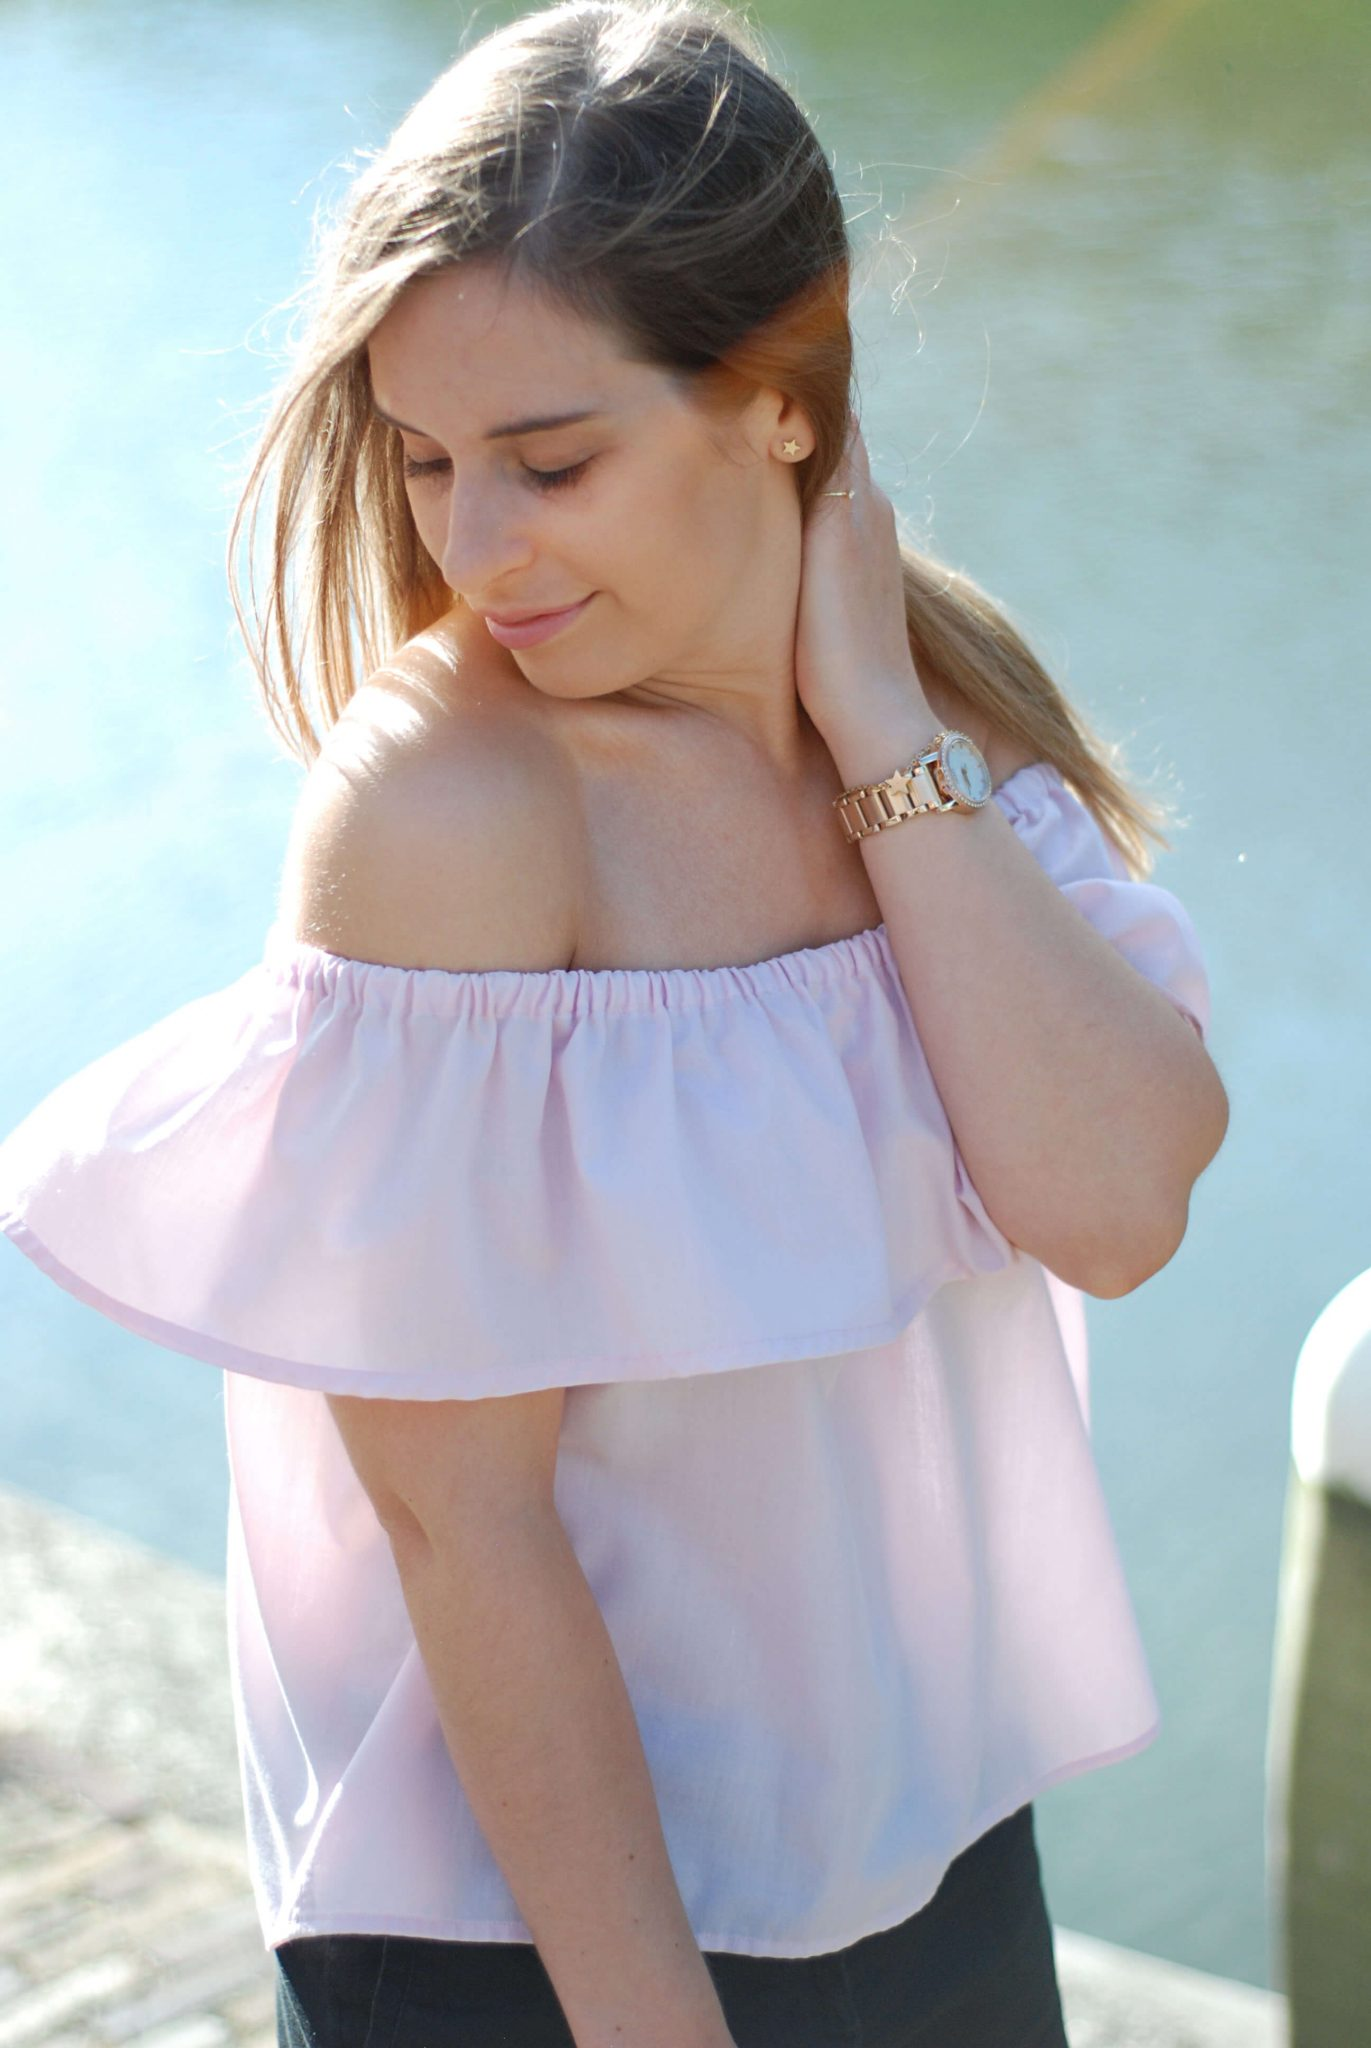 offshoulder-outfit